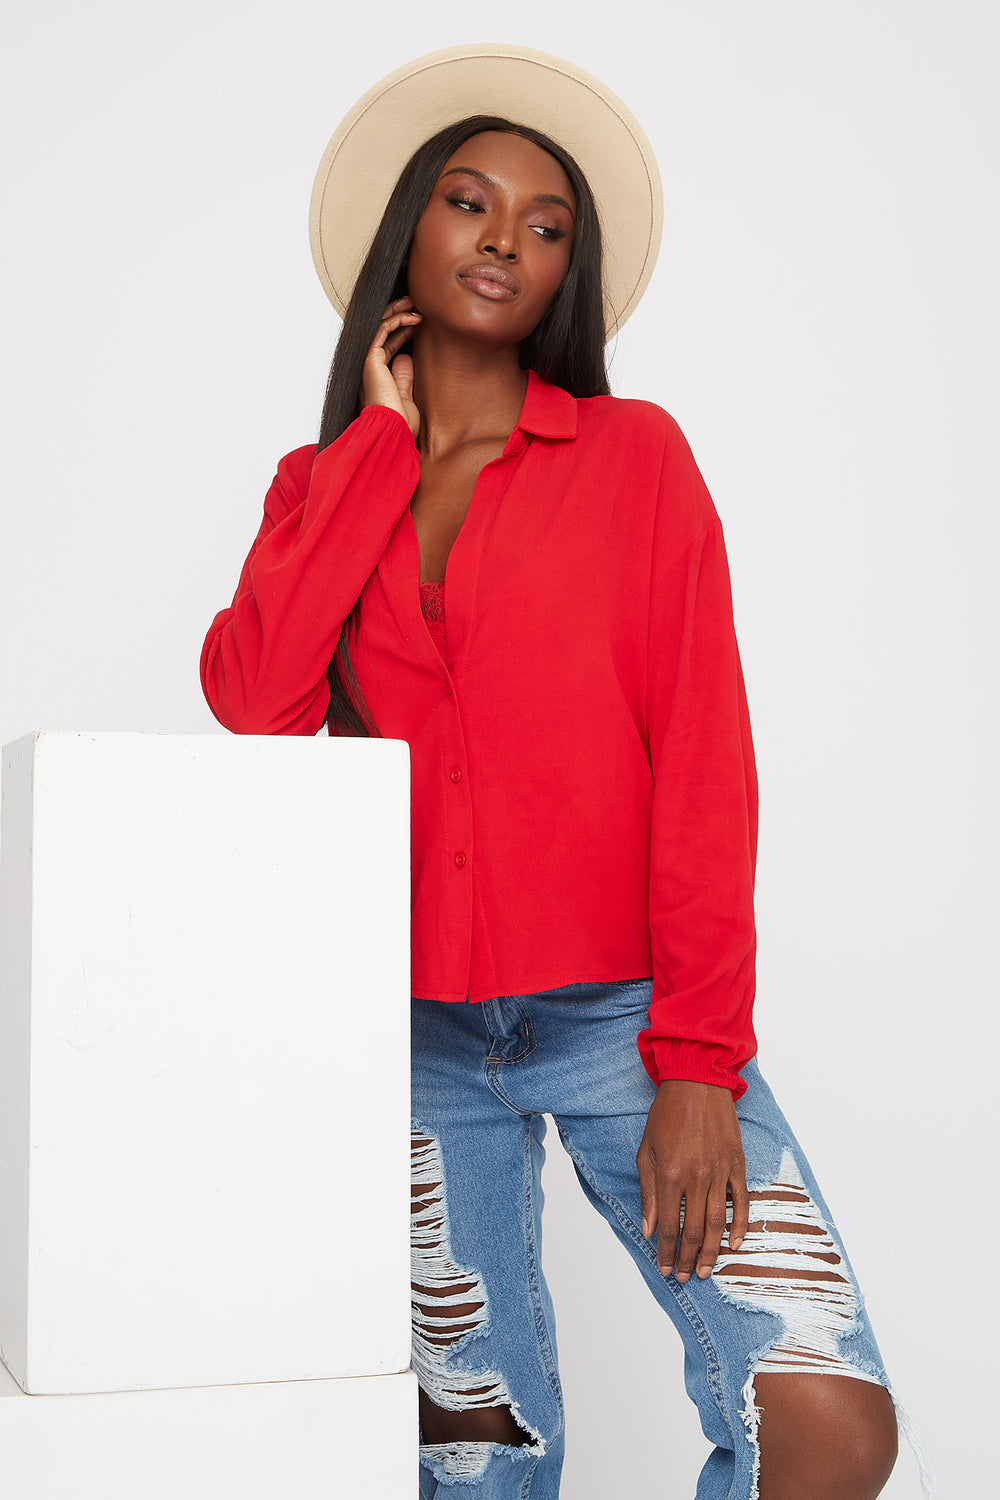 Lace Camisole and Button-Up Shirt Red